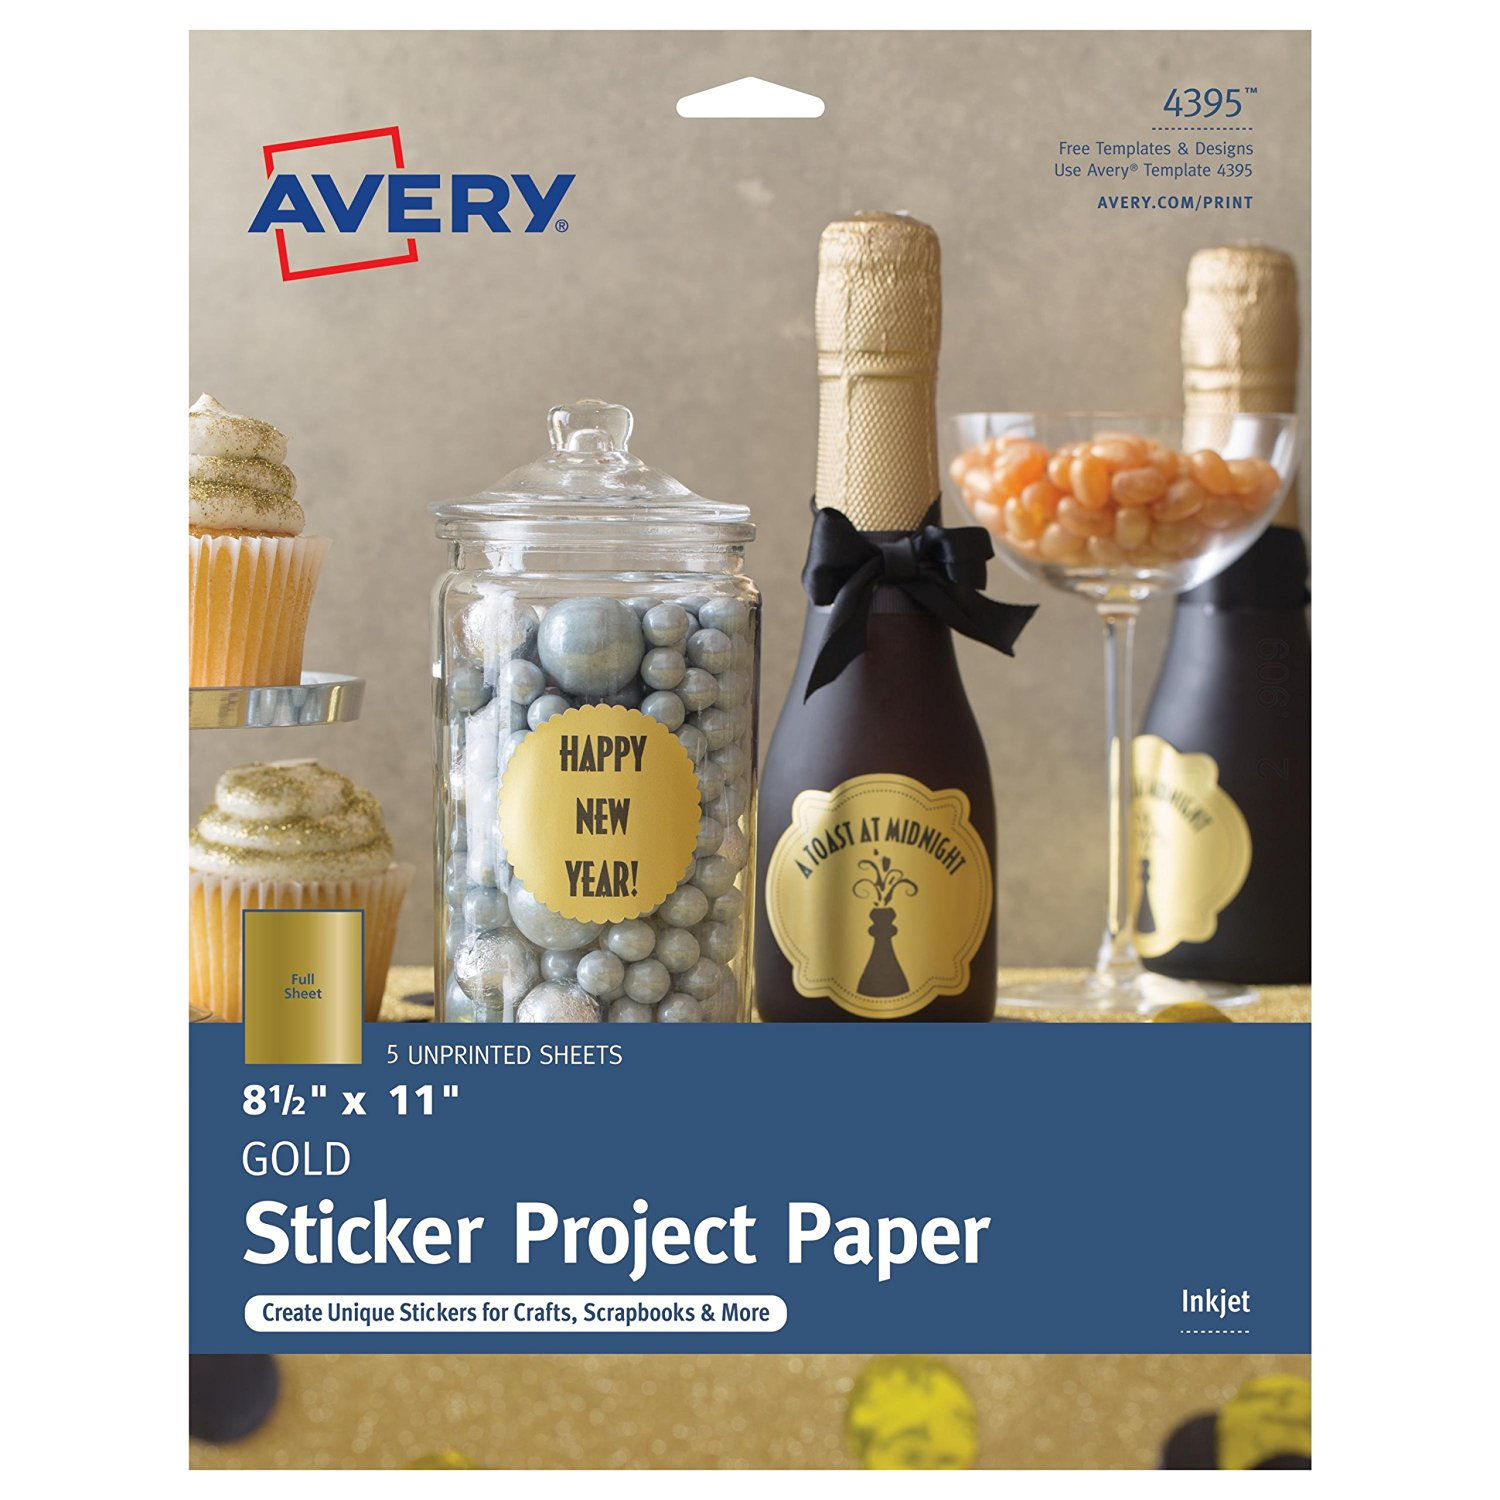 """Avery Gold Full-Sheet Sticker Project Paper, 8-1/2"""" x 11"""" 5 Sheets (4395)"""